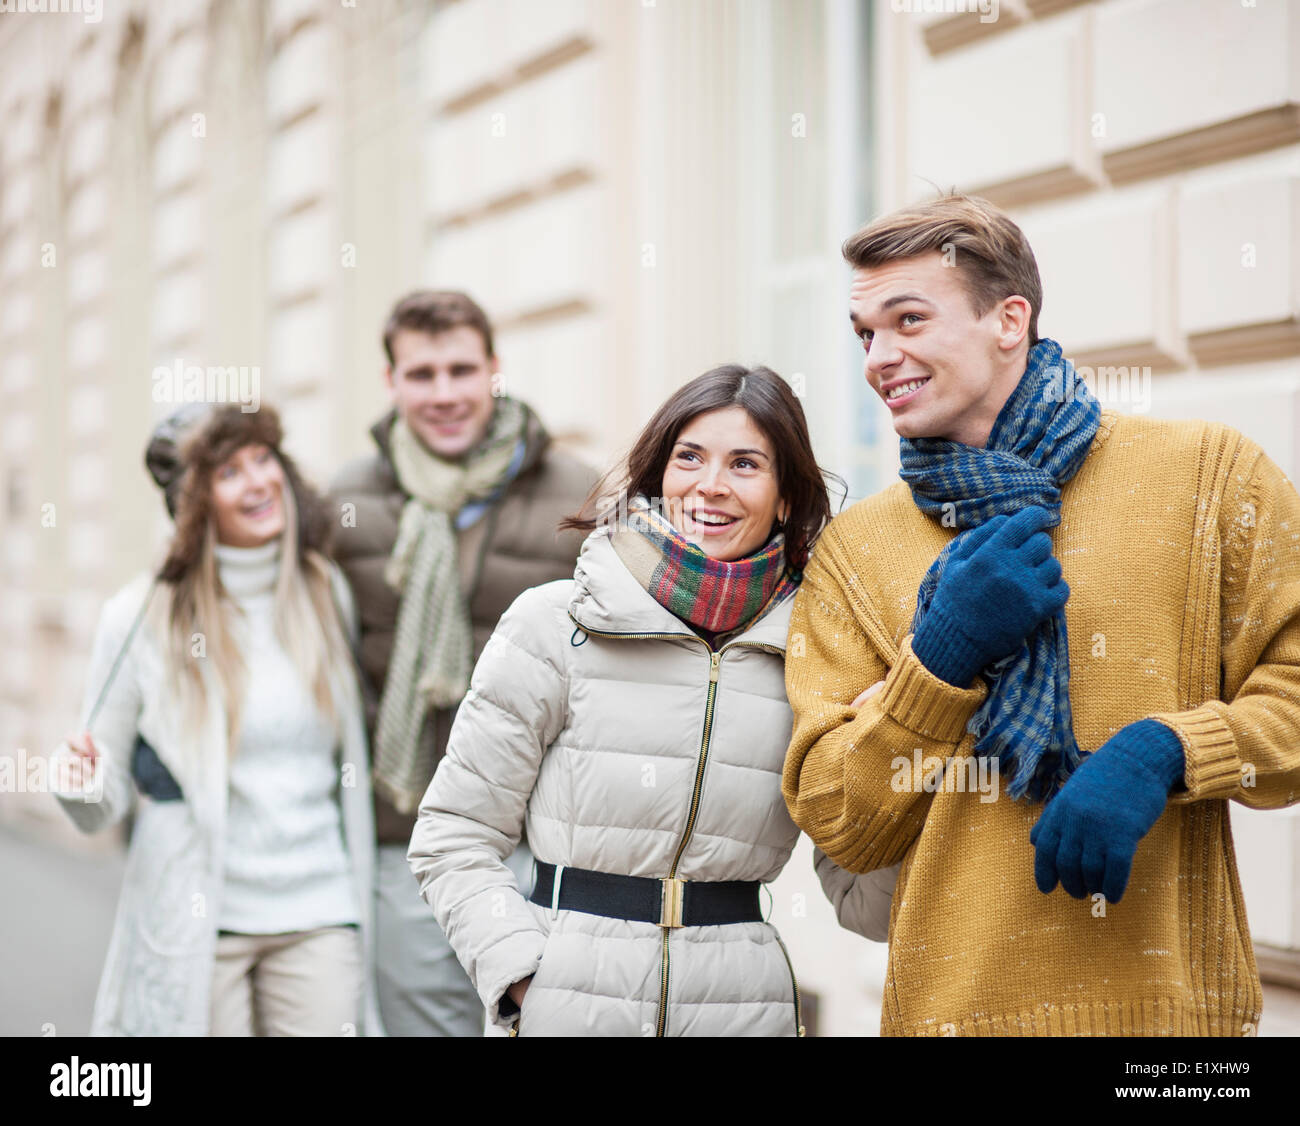 Happy young couples in warm clothing enjoying vacation - Stock Image